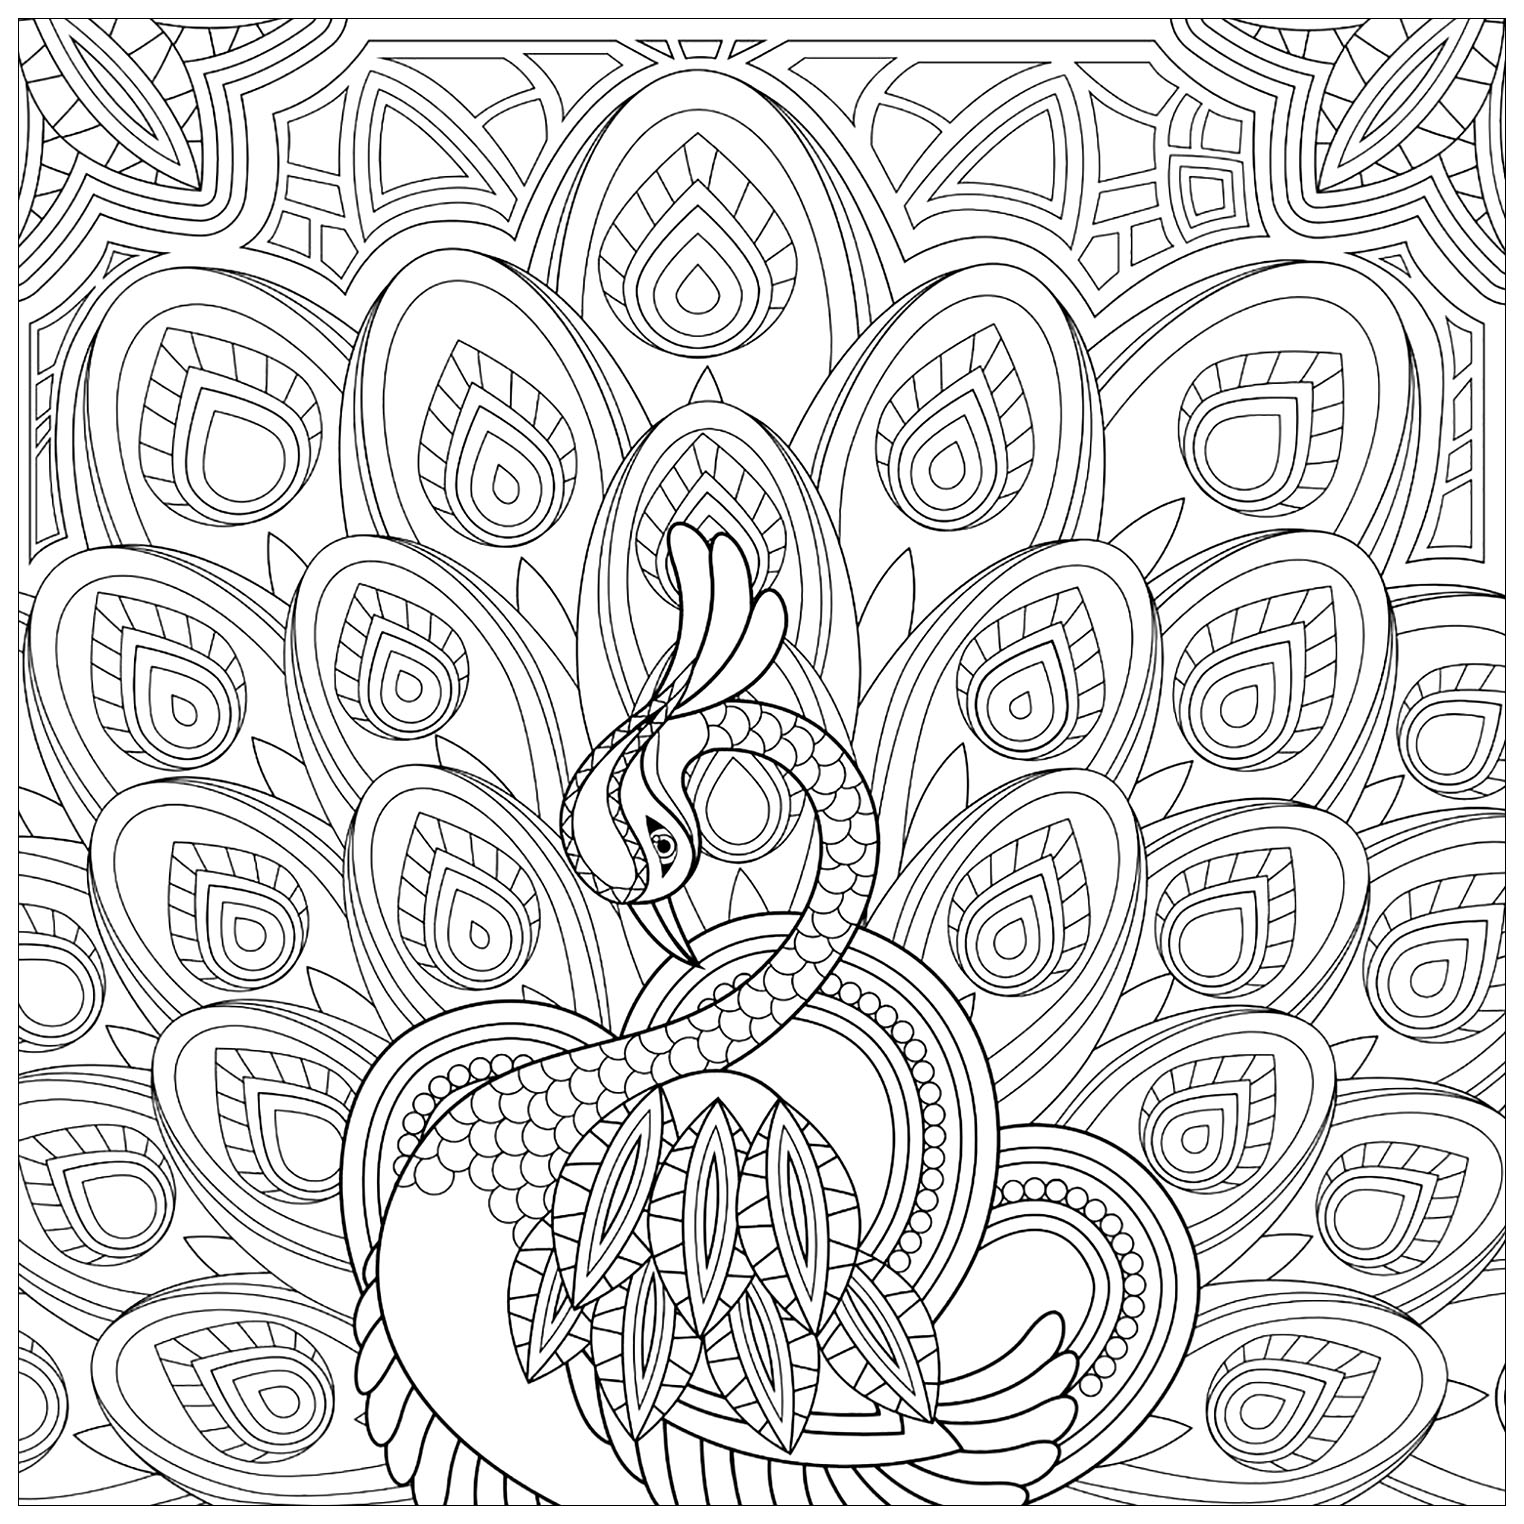 Peacocks free to color for children - Peacocks Kids ...